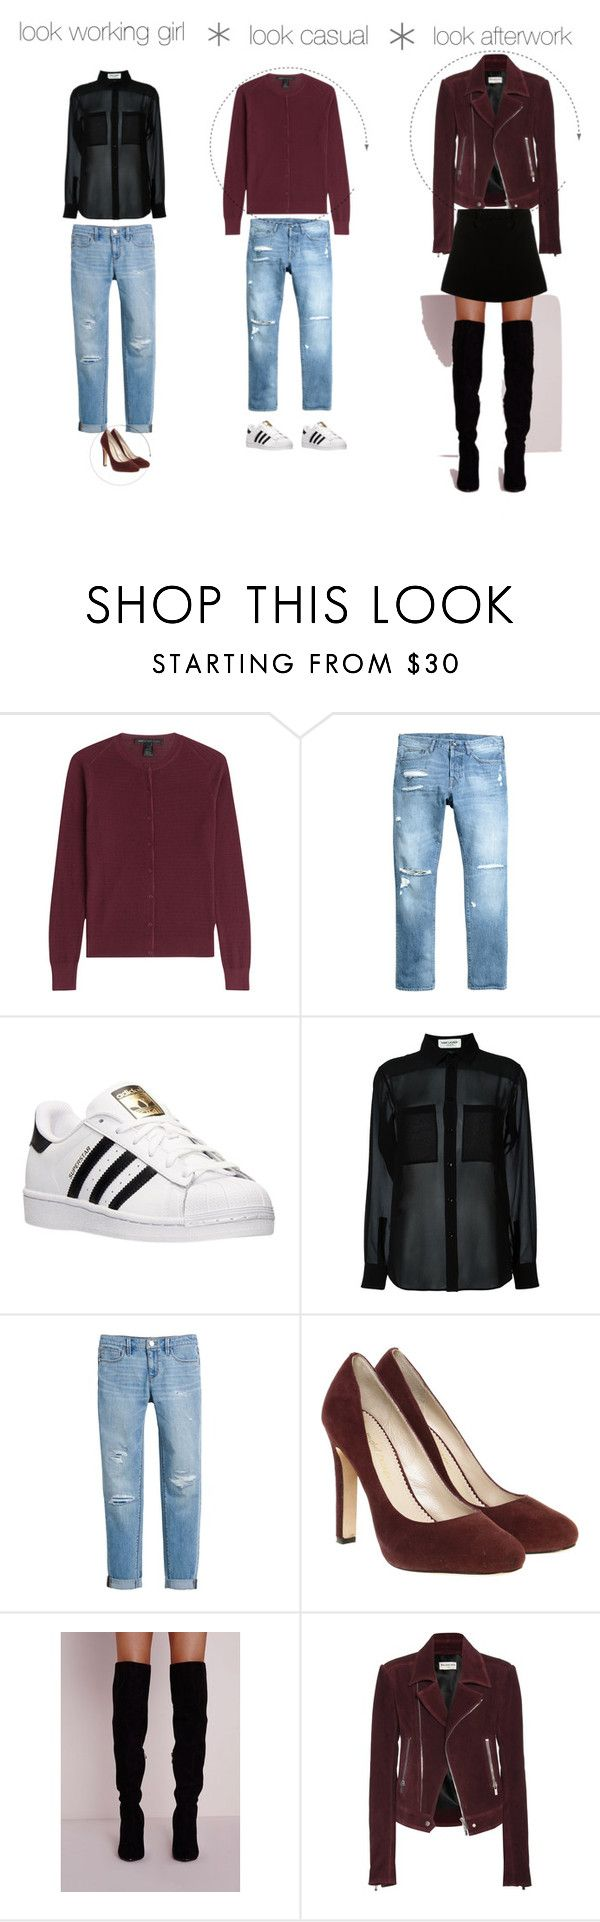 """Sin título #35"" by luisamariafranco on Polyvore featuring moda, Marc by Marc Jacobs, H&M, adidas, Yves Saint Laurent, White House Black Market, Jean-Michel Cazabat, Balenciaga y Paul & Joe"